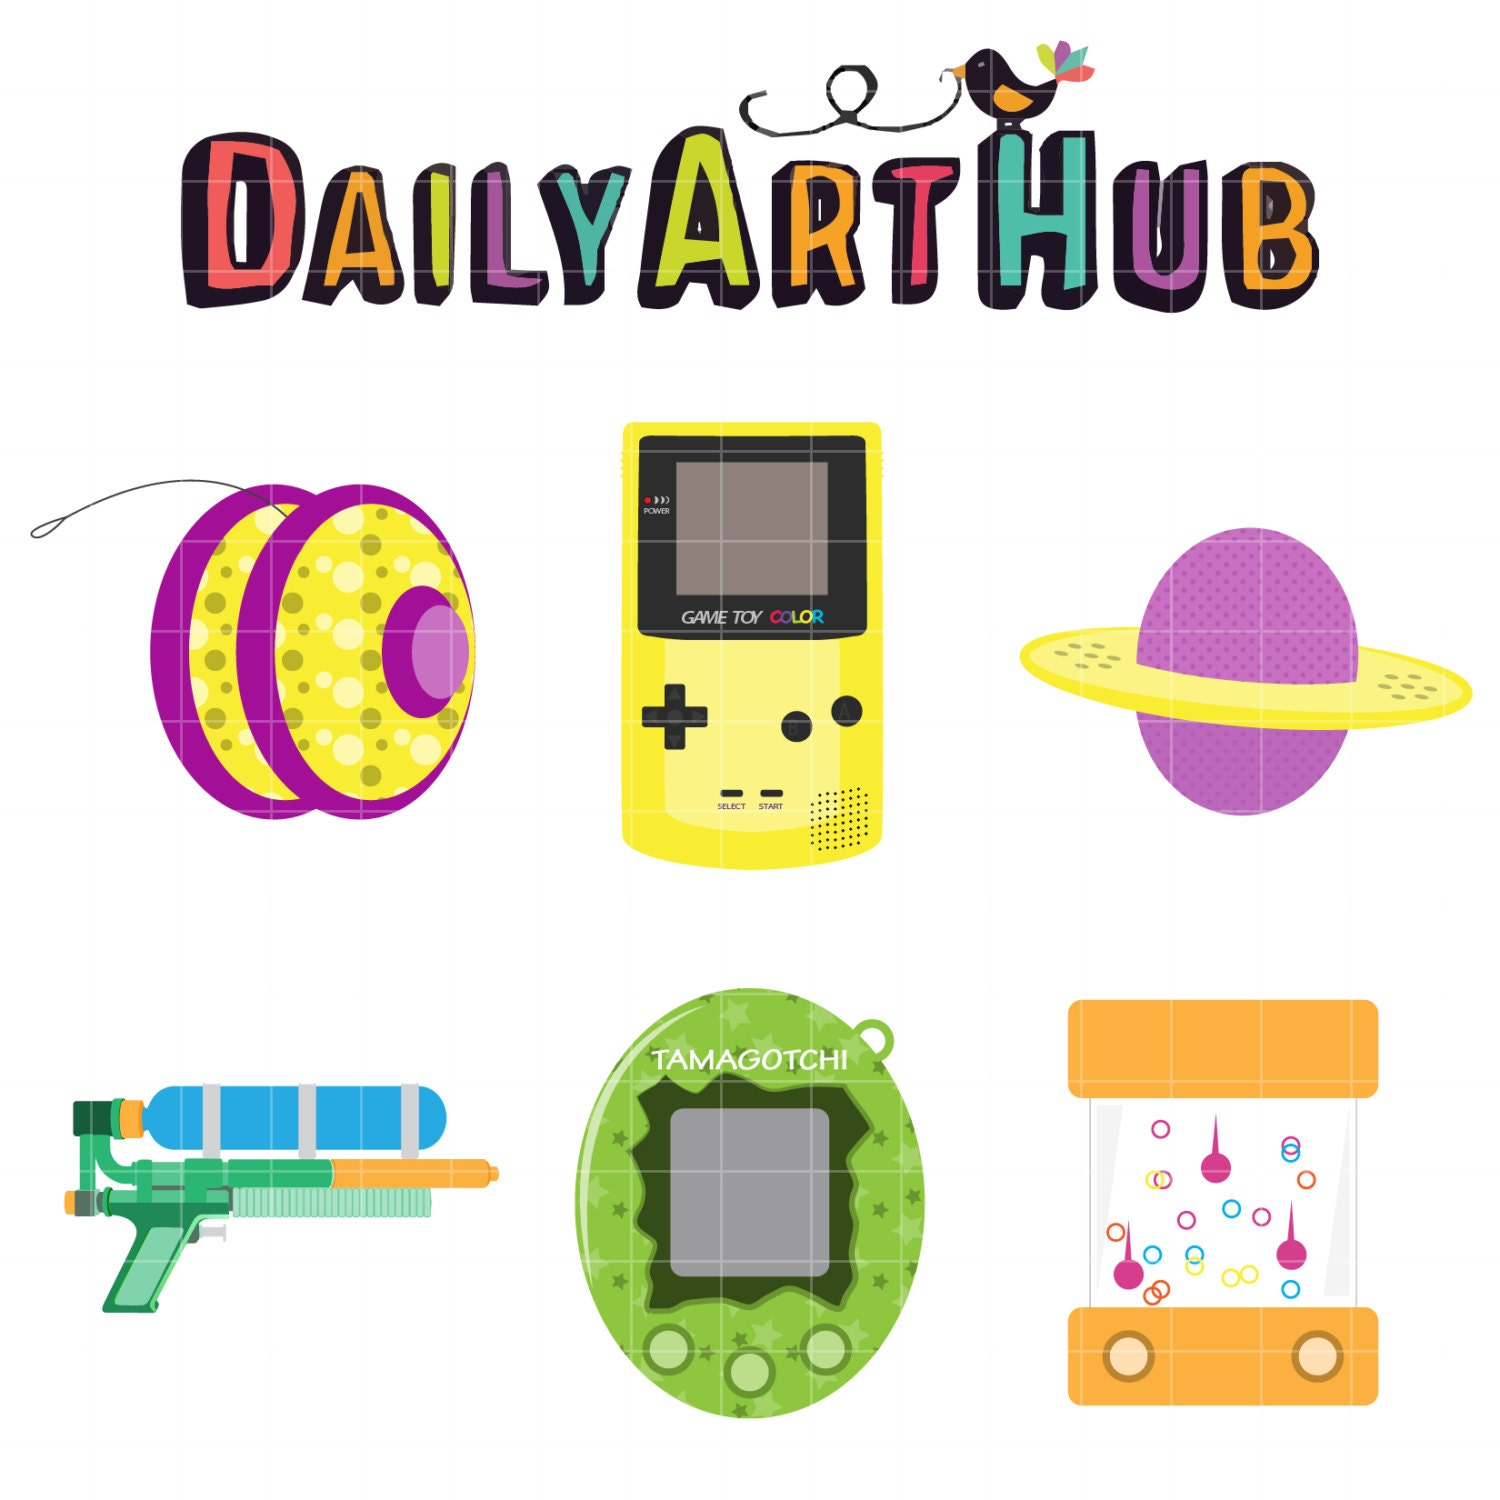 Toys And Games Clip Art : Retro games clip art classic toys clipart by dailyarthub